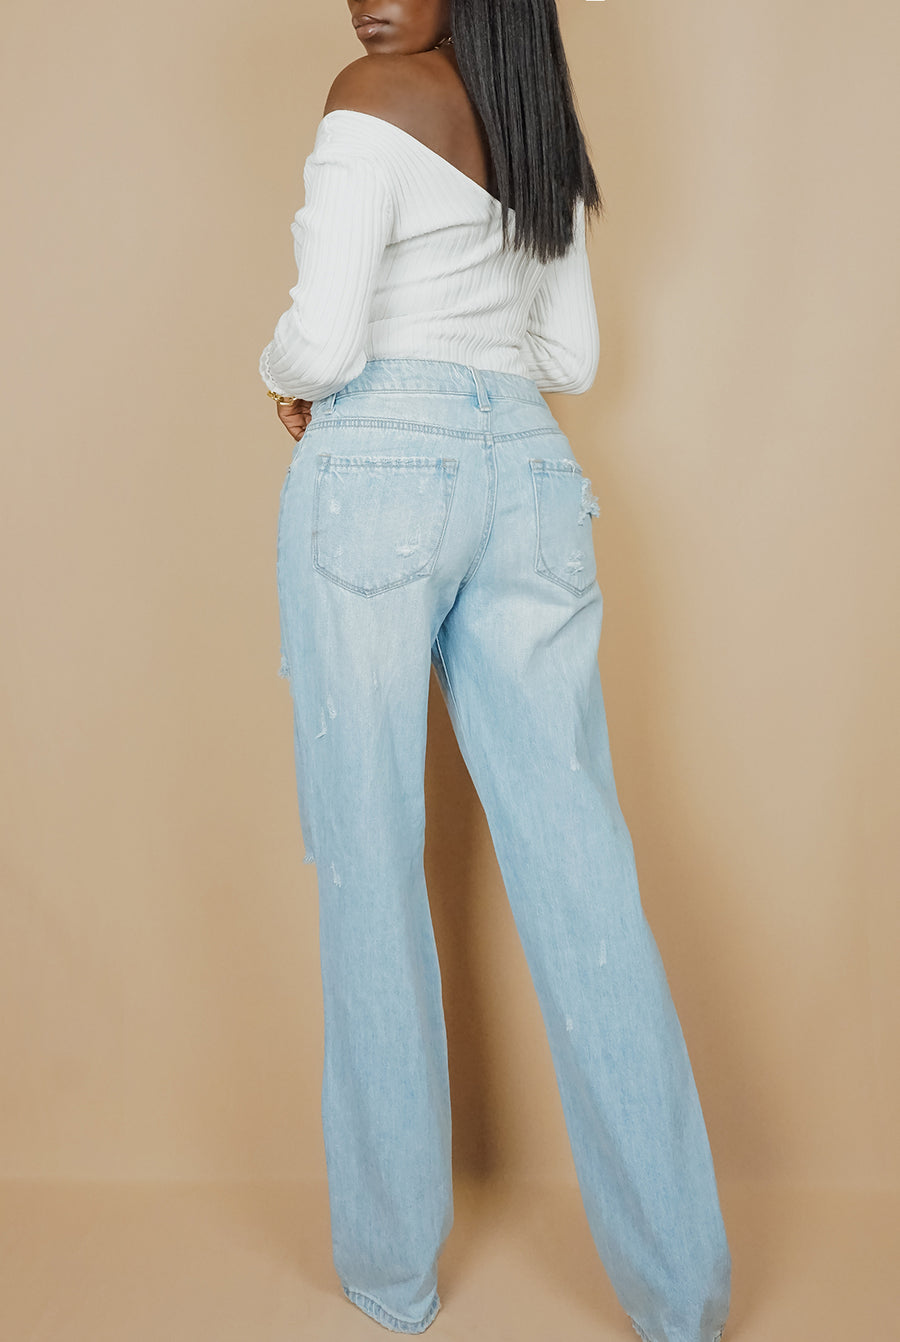 distressed straight leg light wash blue denim jeans